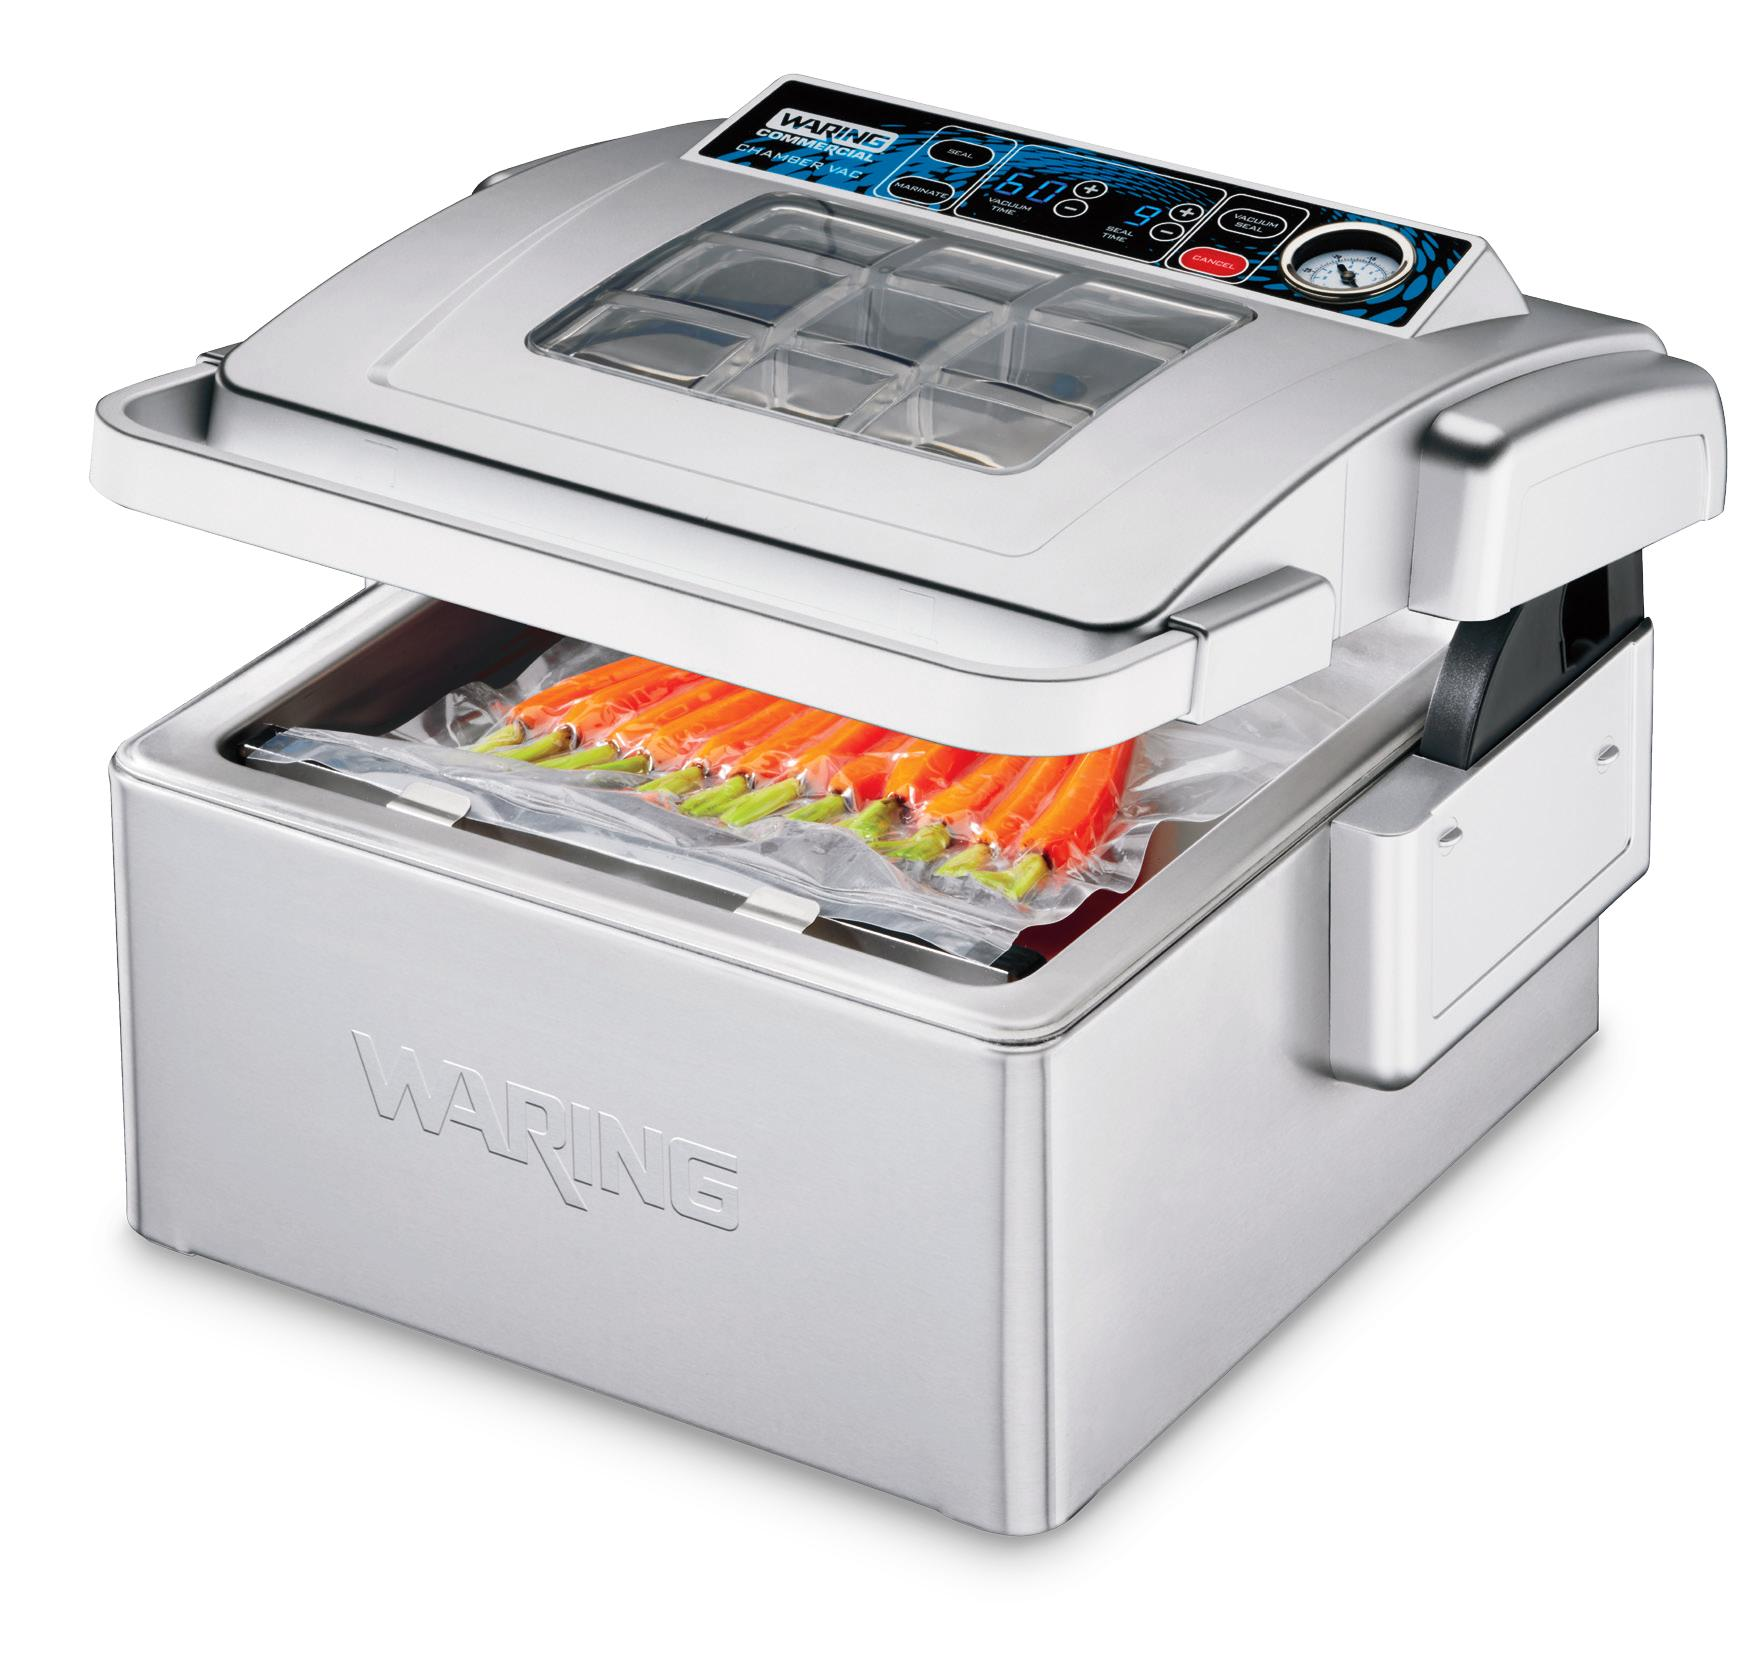 Waring's Chamber Vacuum Sealer reduces food costs, saves on storage space and can prepare your food